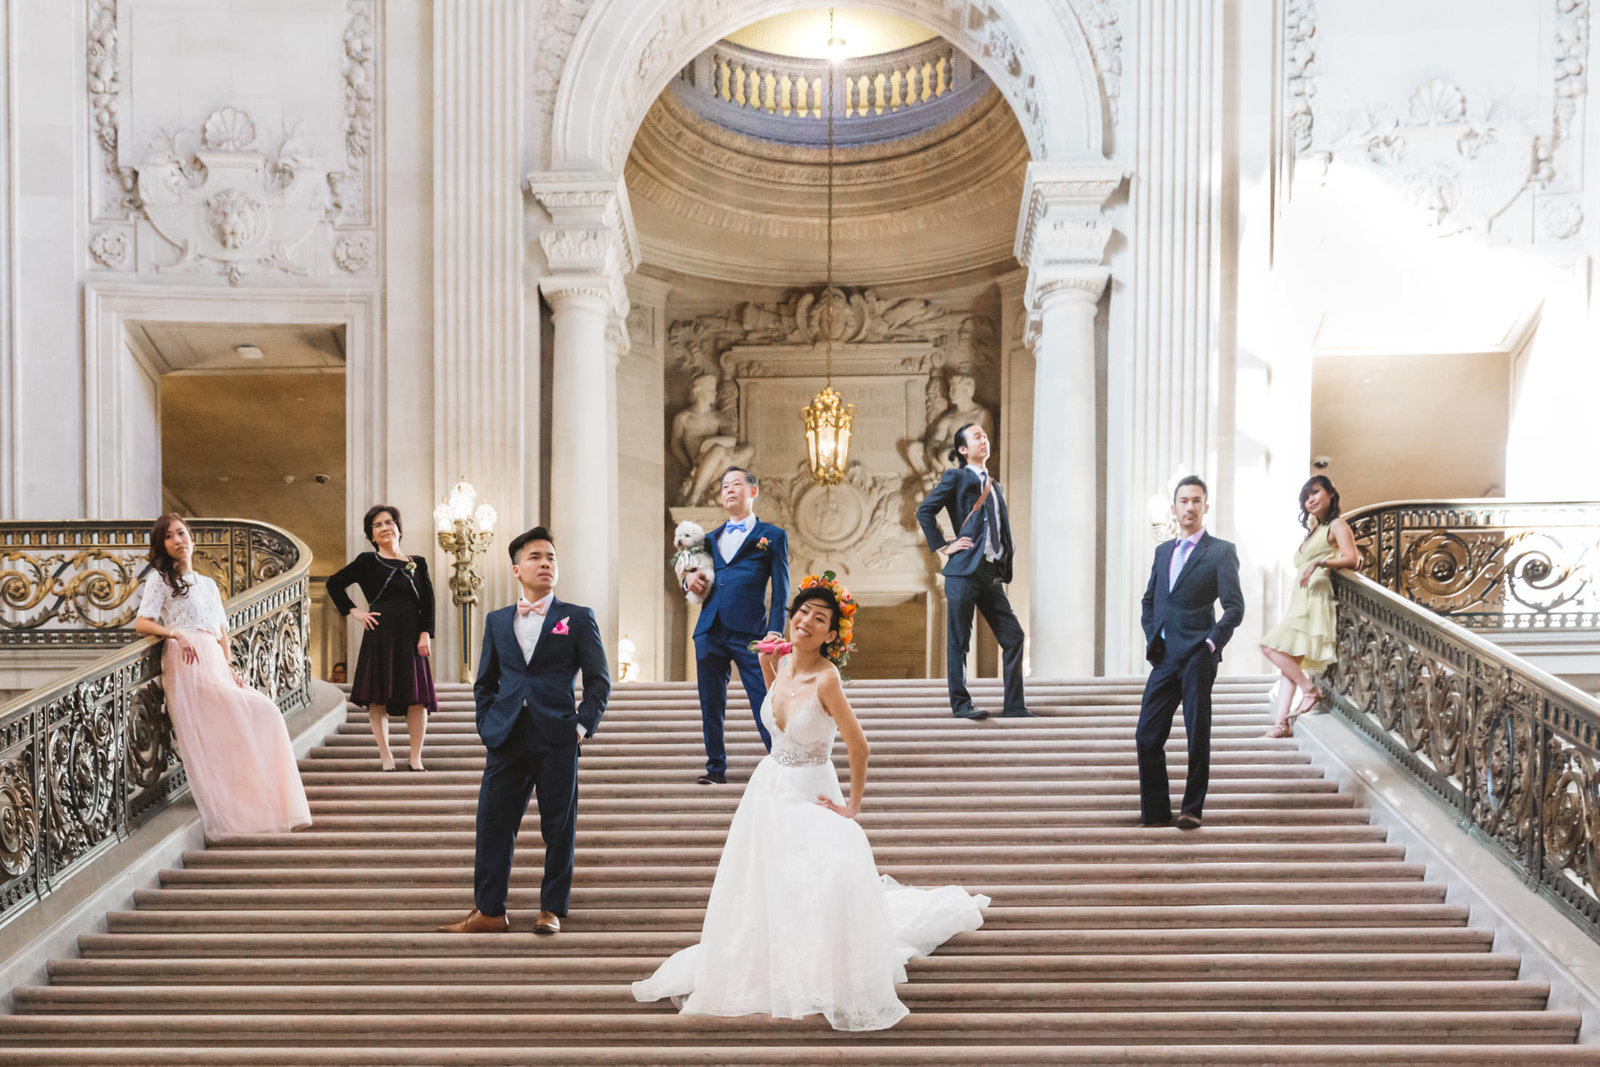 Fun family portraits by Zoe Larkin Photography, San Francisco City Hall wedding photographer